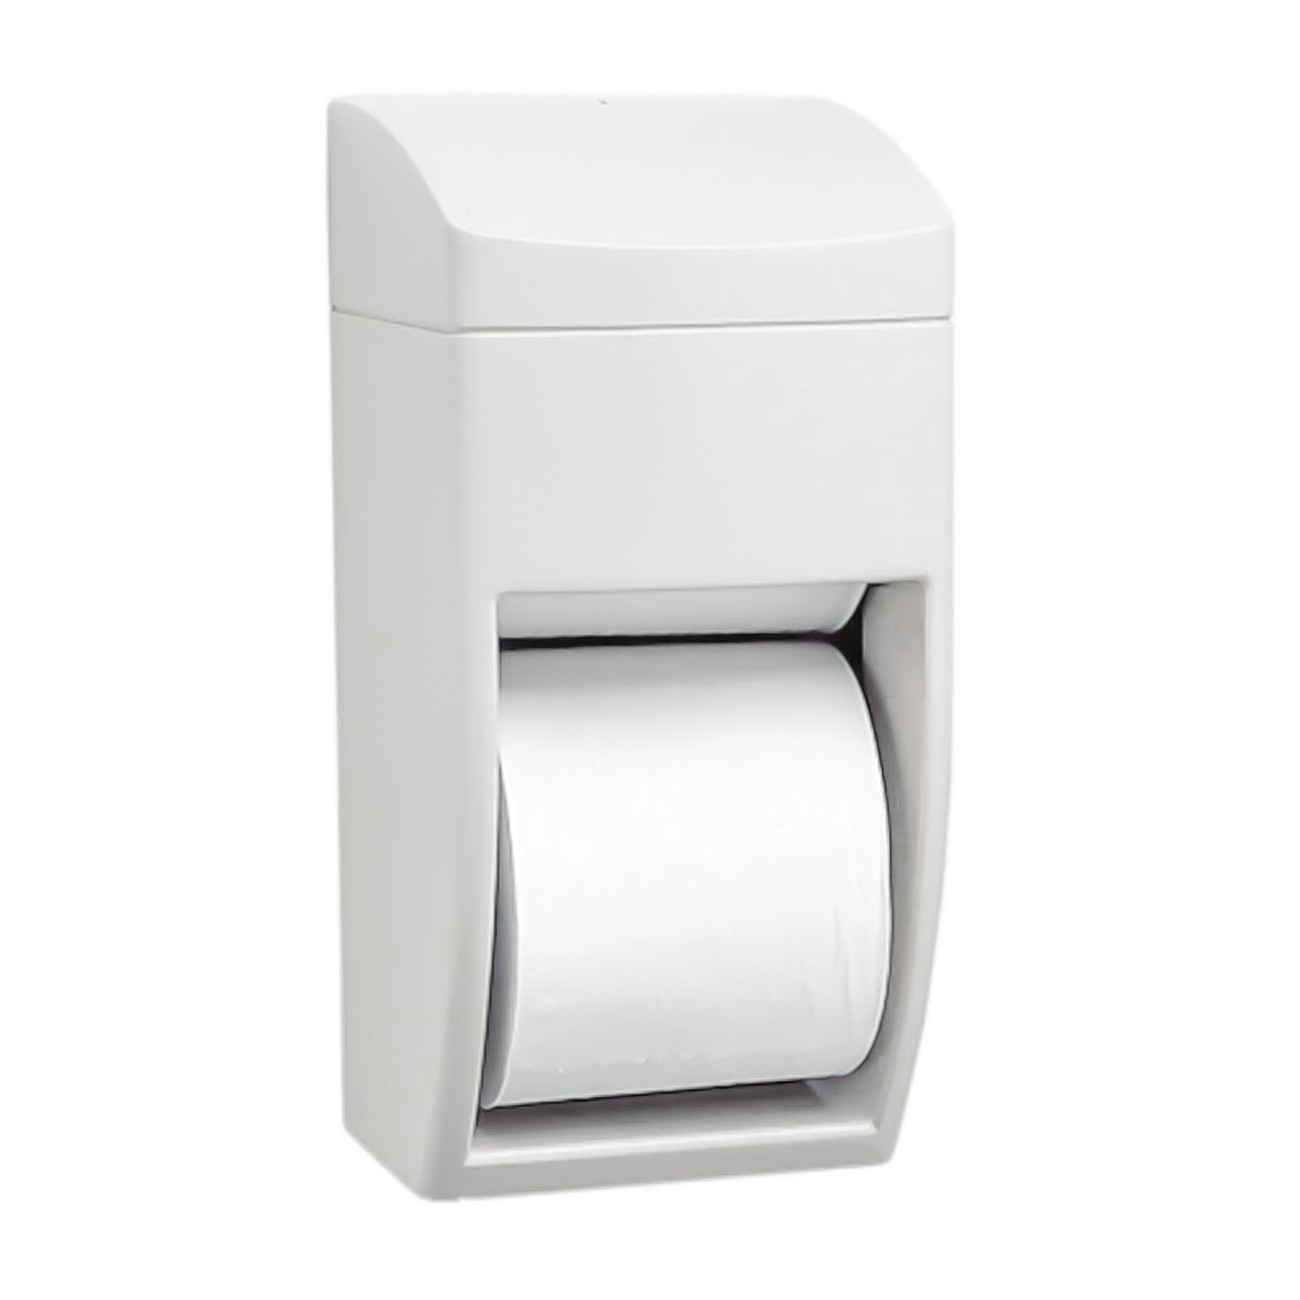 TOTALPACK® Double Bath Tissue Dispenser